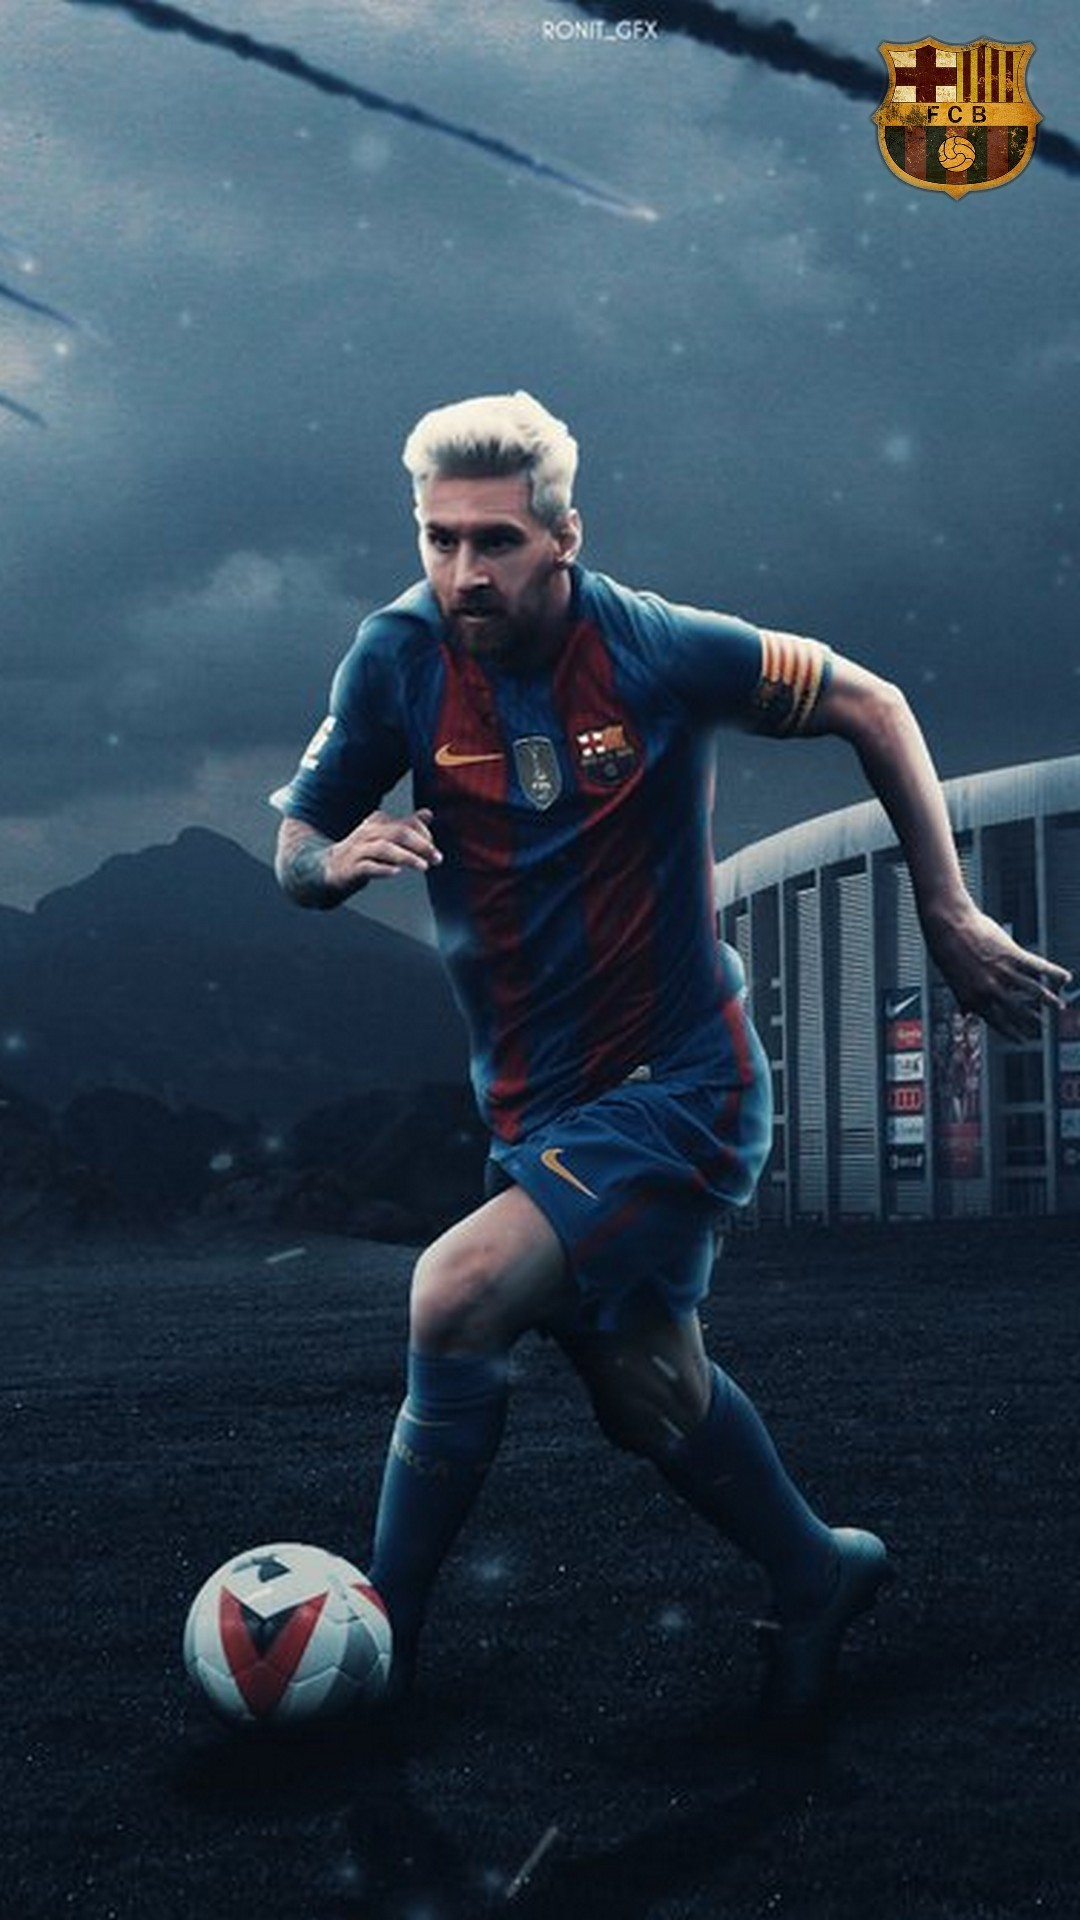 Leo Messi Iphone Wallpapers With Resolution Pixel - Iphone Messi Wallpaper Hd - HD Wallpaper